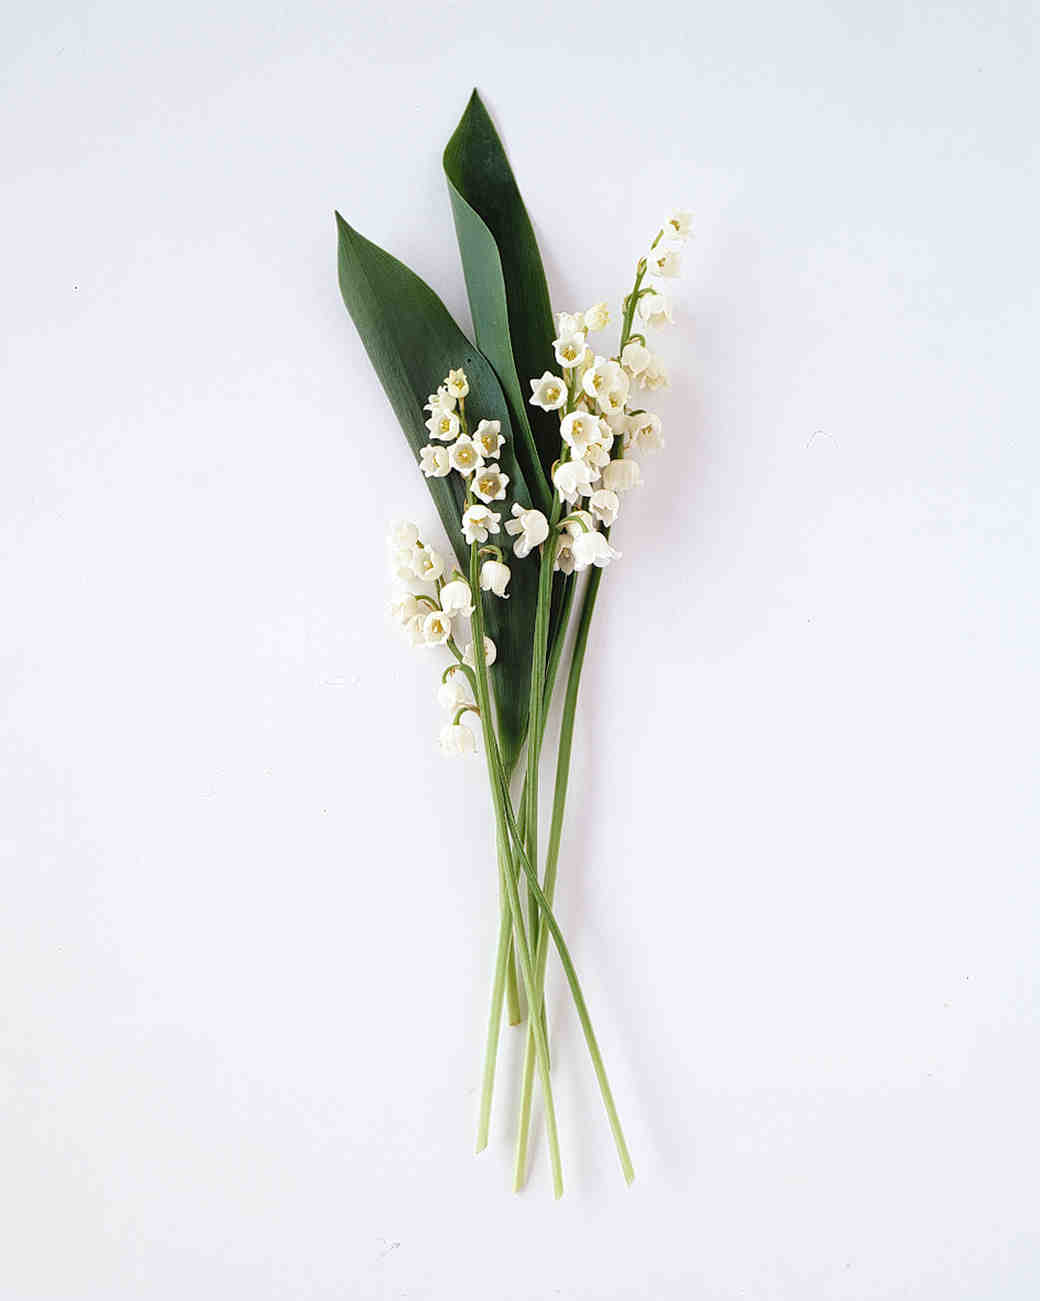 flower-glossary-lily-of-the-valley-a98432-0415.jpg